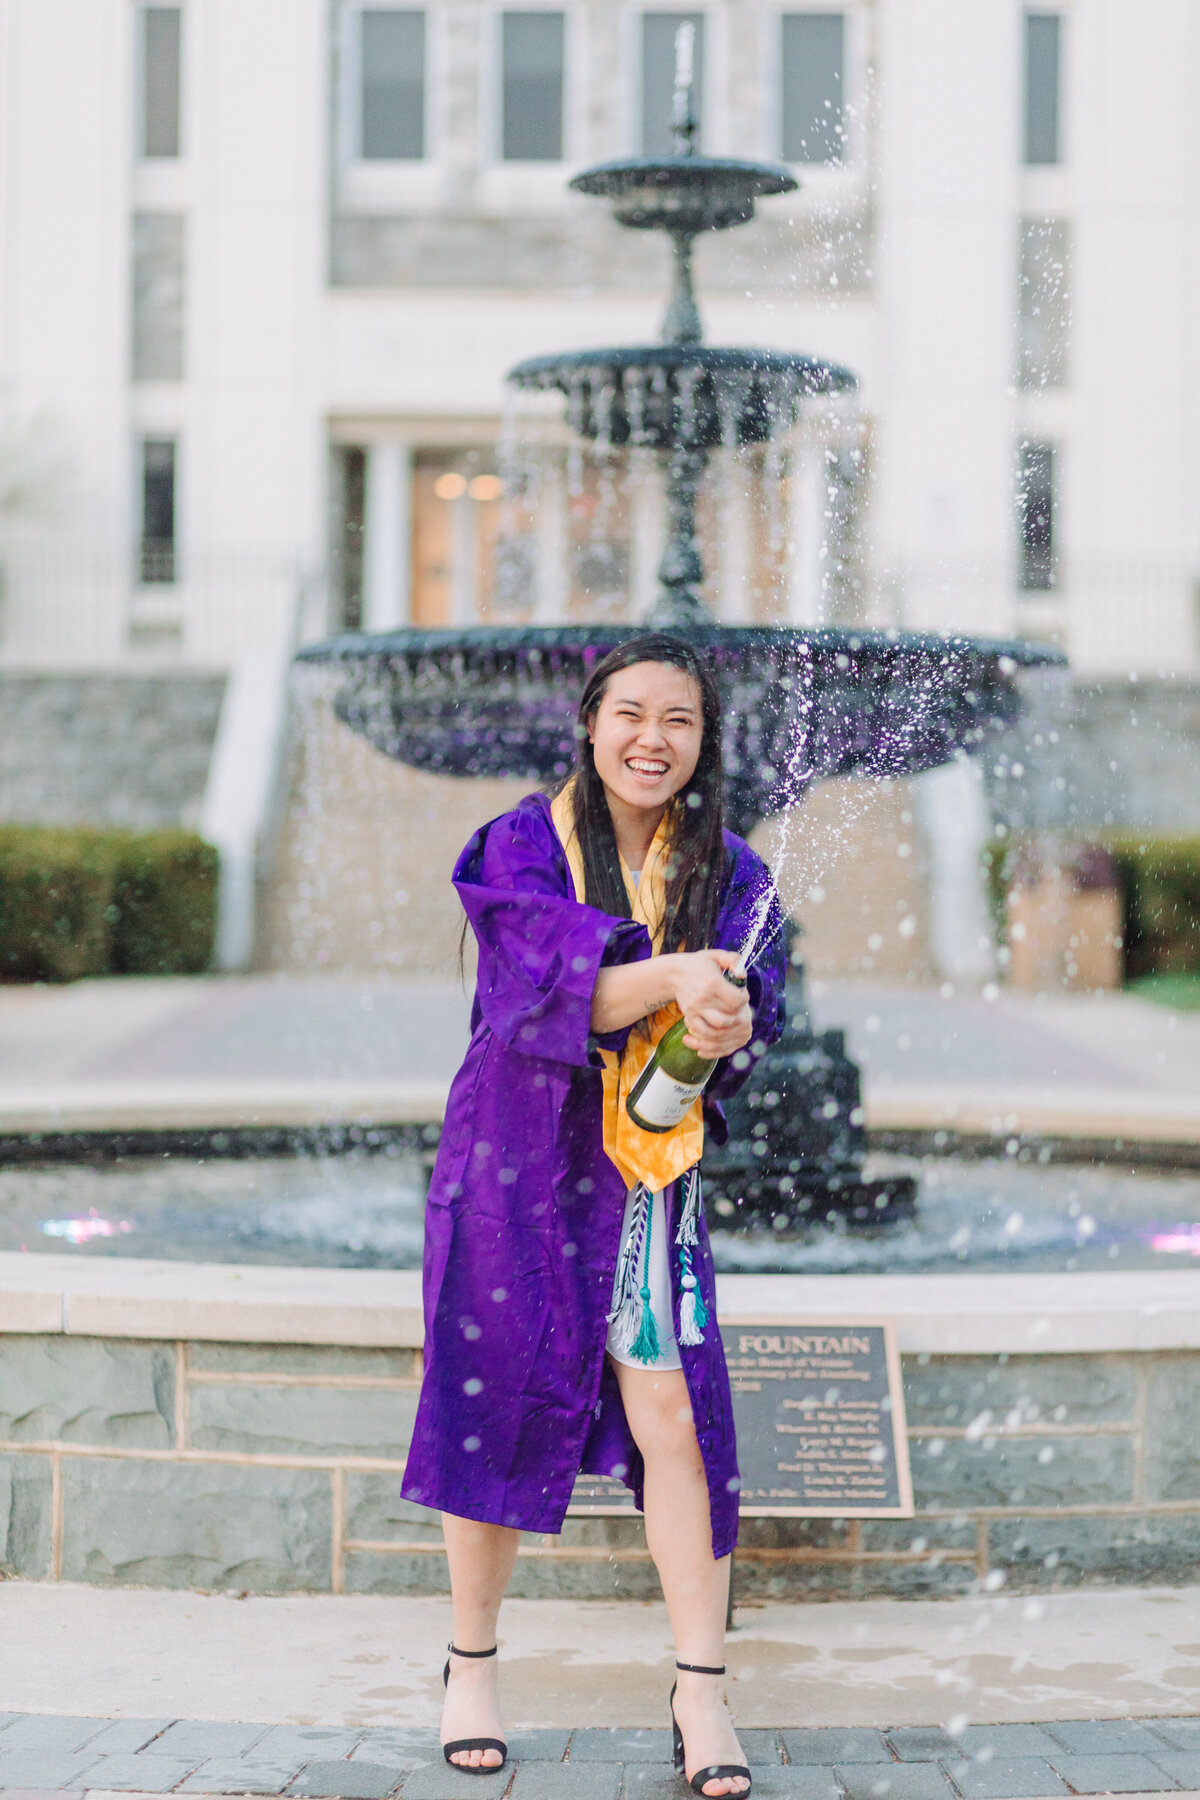 BeckyChen_AngelikaJohnsPhotography_JMU_JamesMadisonUniversity_GraduationSeniorPhotos-4250